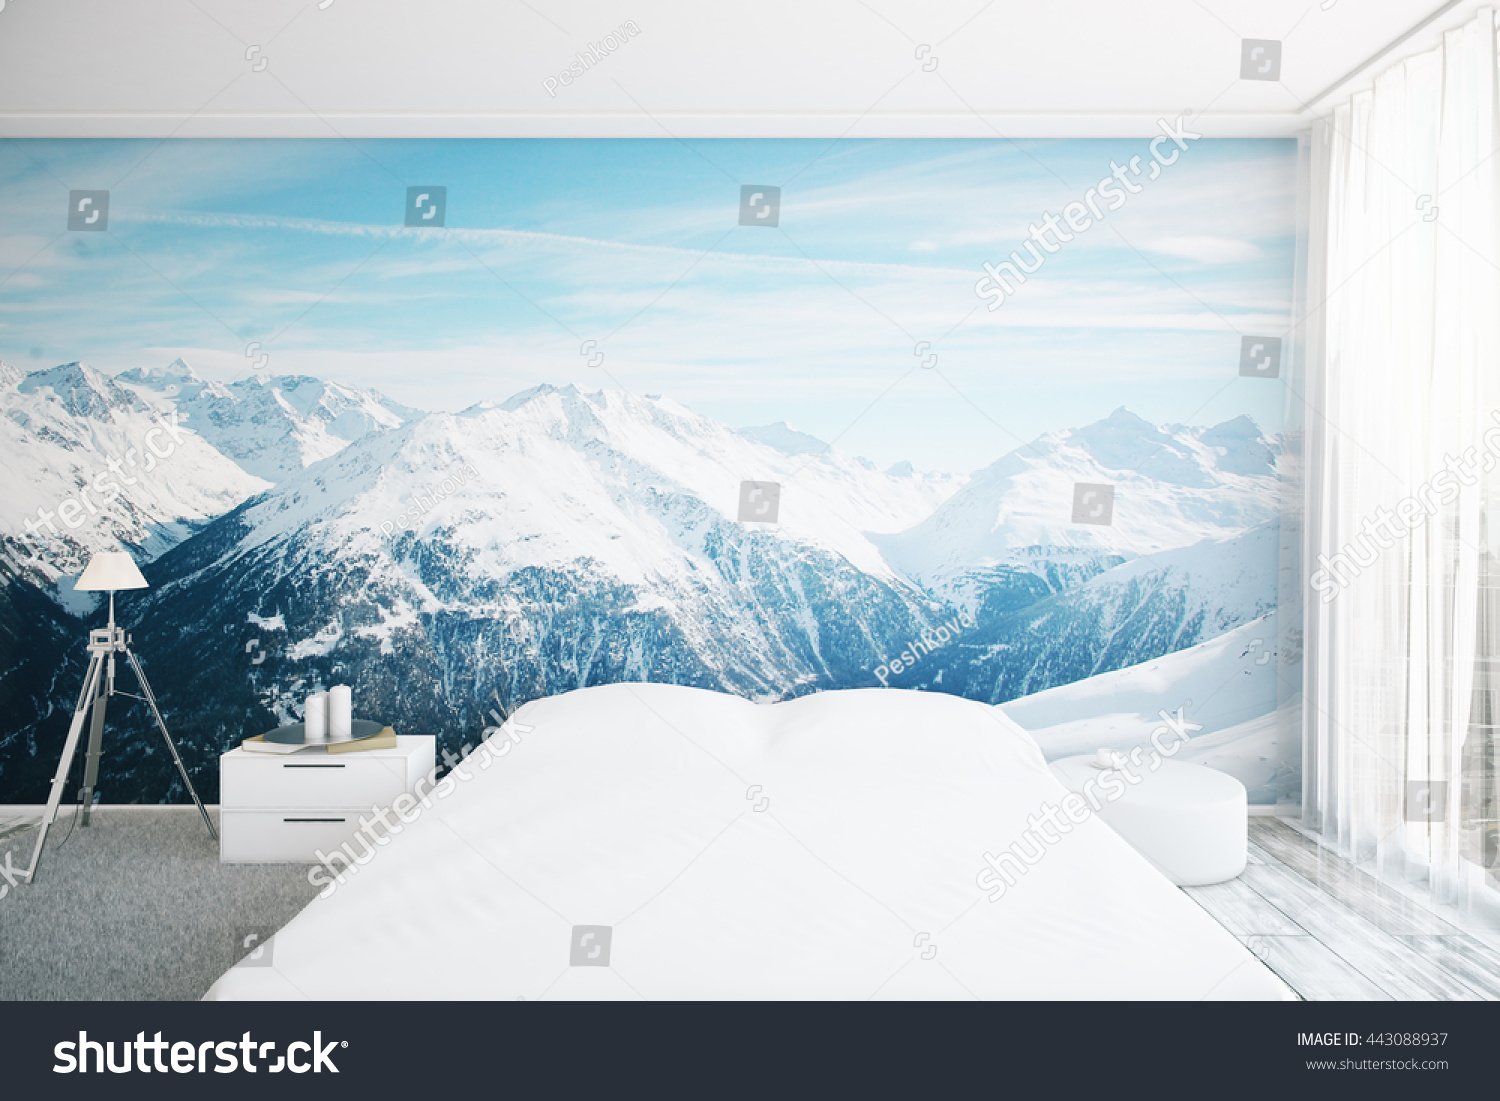 Popular Wallpaper Mountain Bedroom - stock-photo-creative-furnished-bedroom-interior-with-snowy-mountain-top-wallpaper-d-rendering-443088937  Pictures_464516.jpg